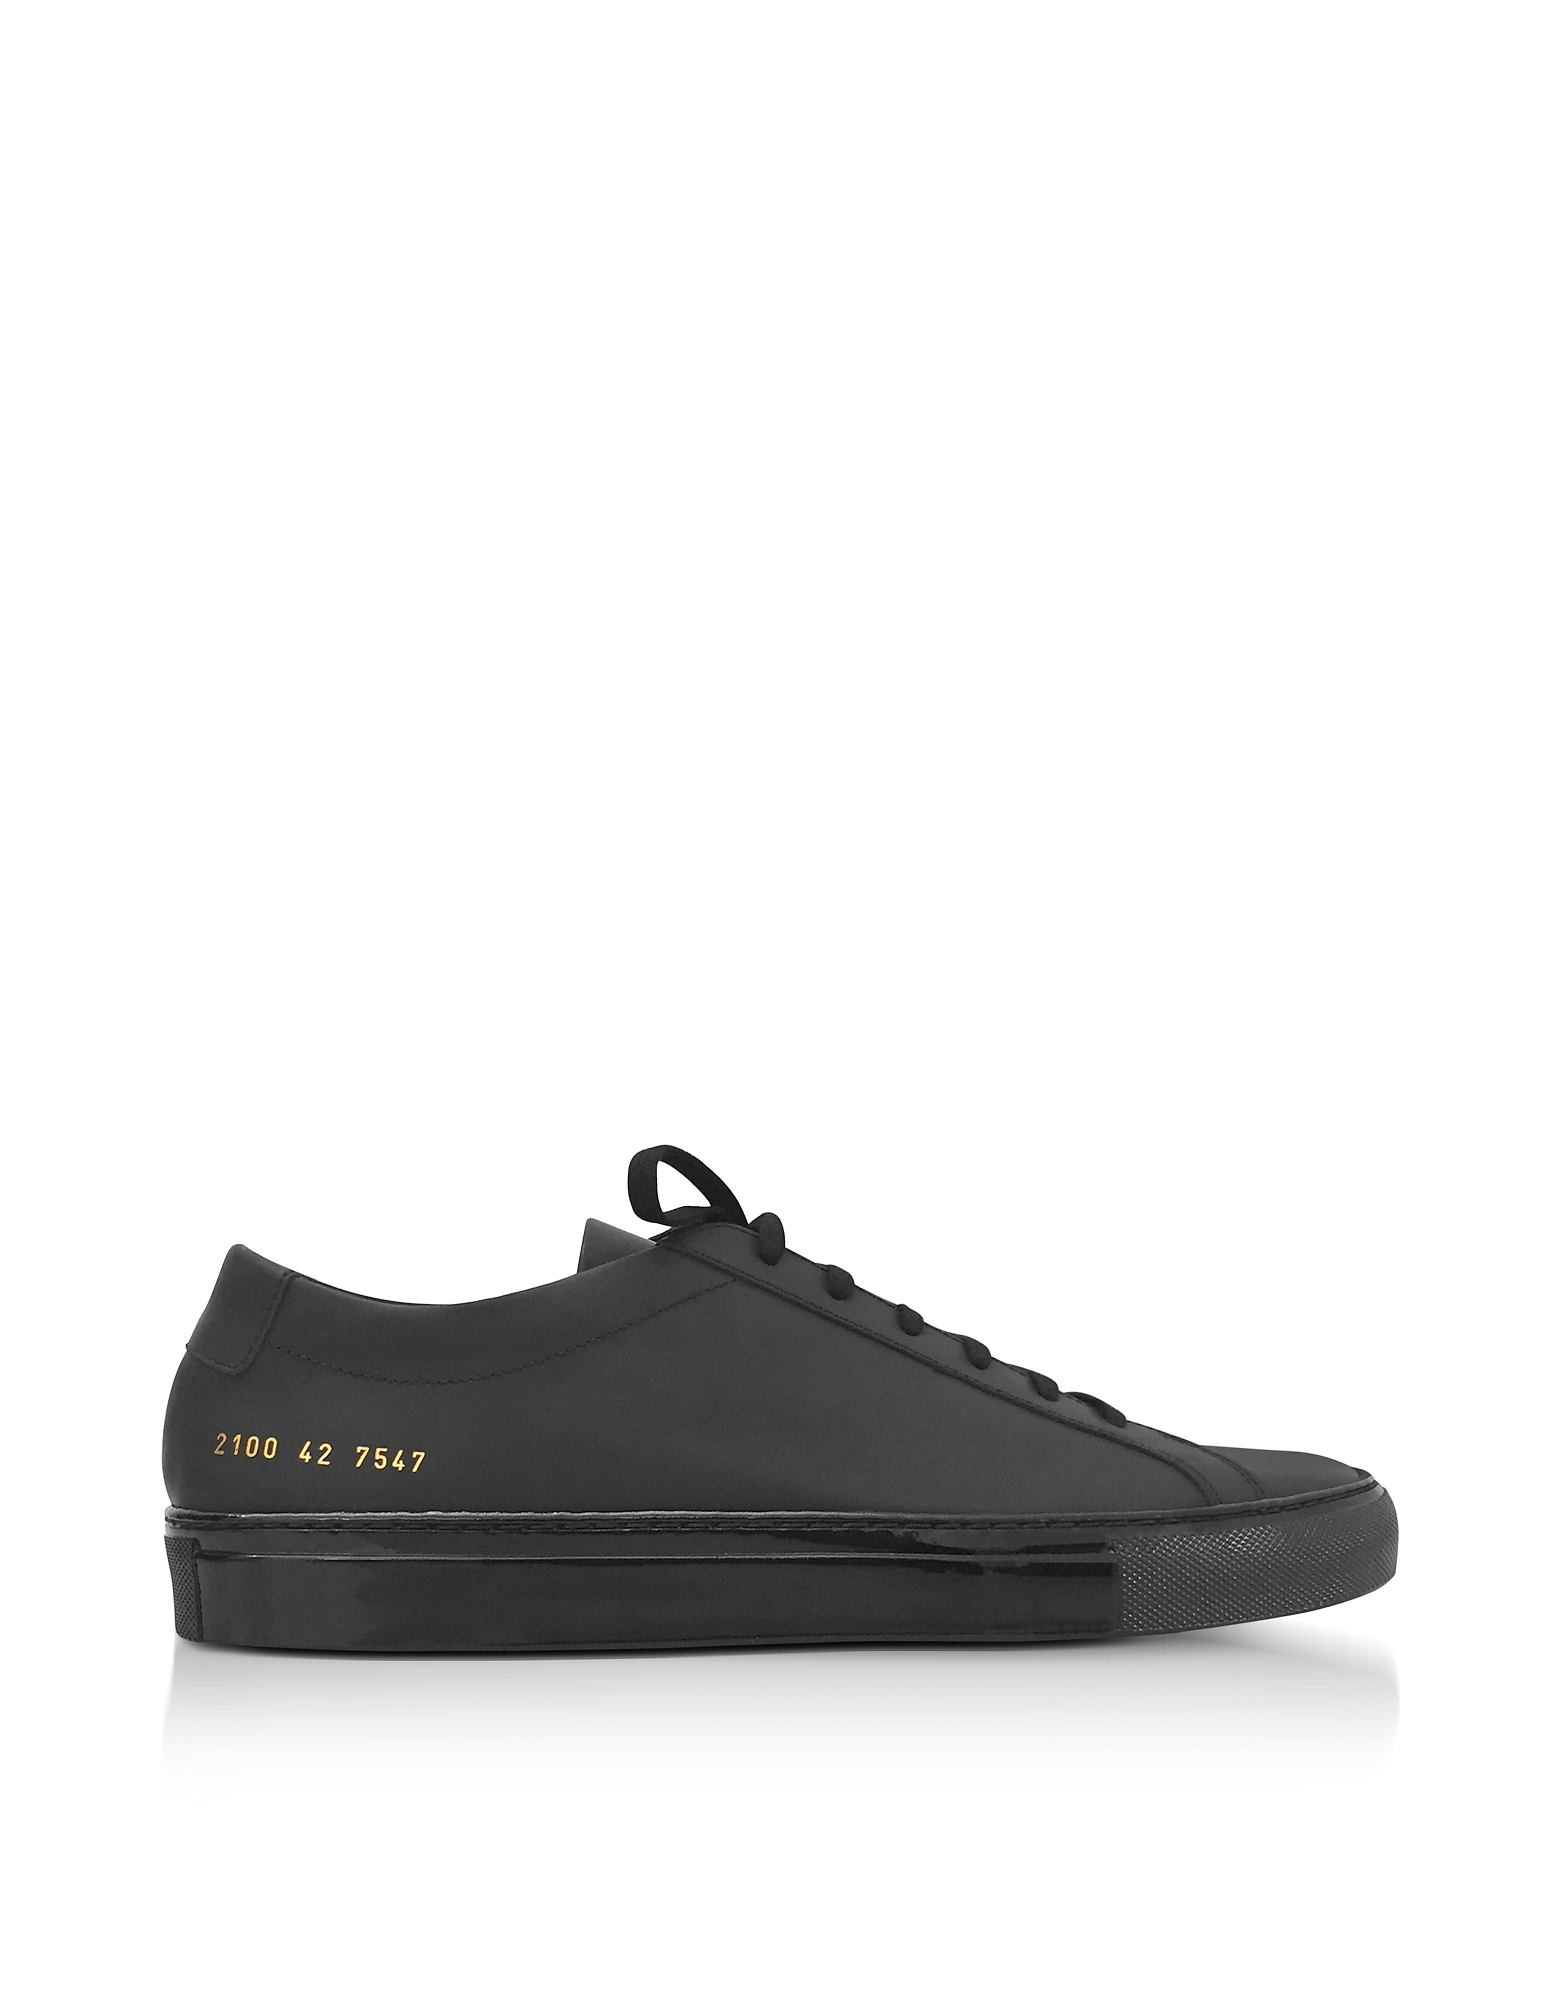 Common Projects Shoes, Black Leather Achilles Luxe Men's Sneakers